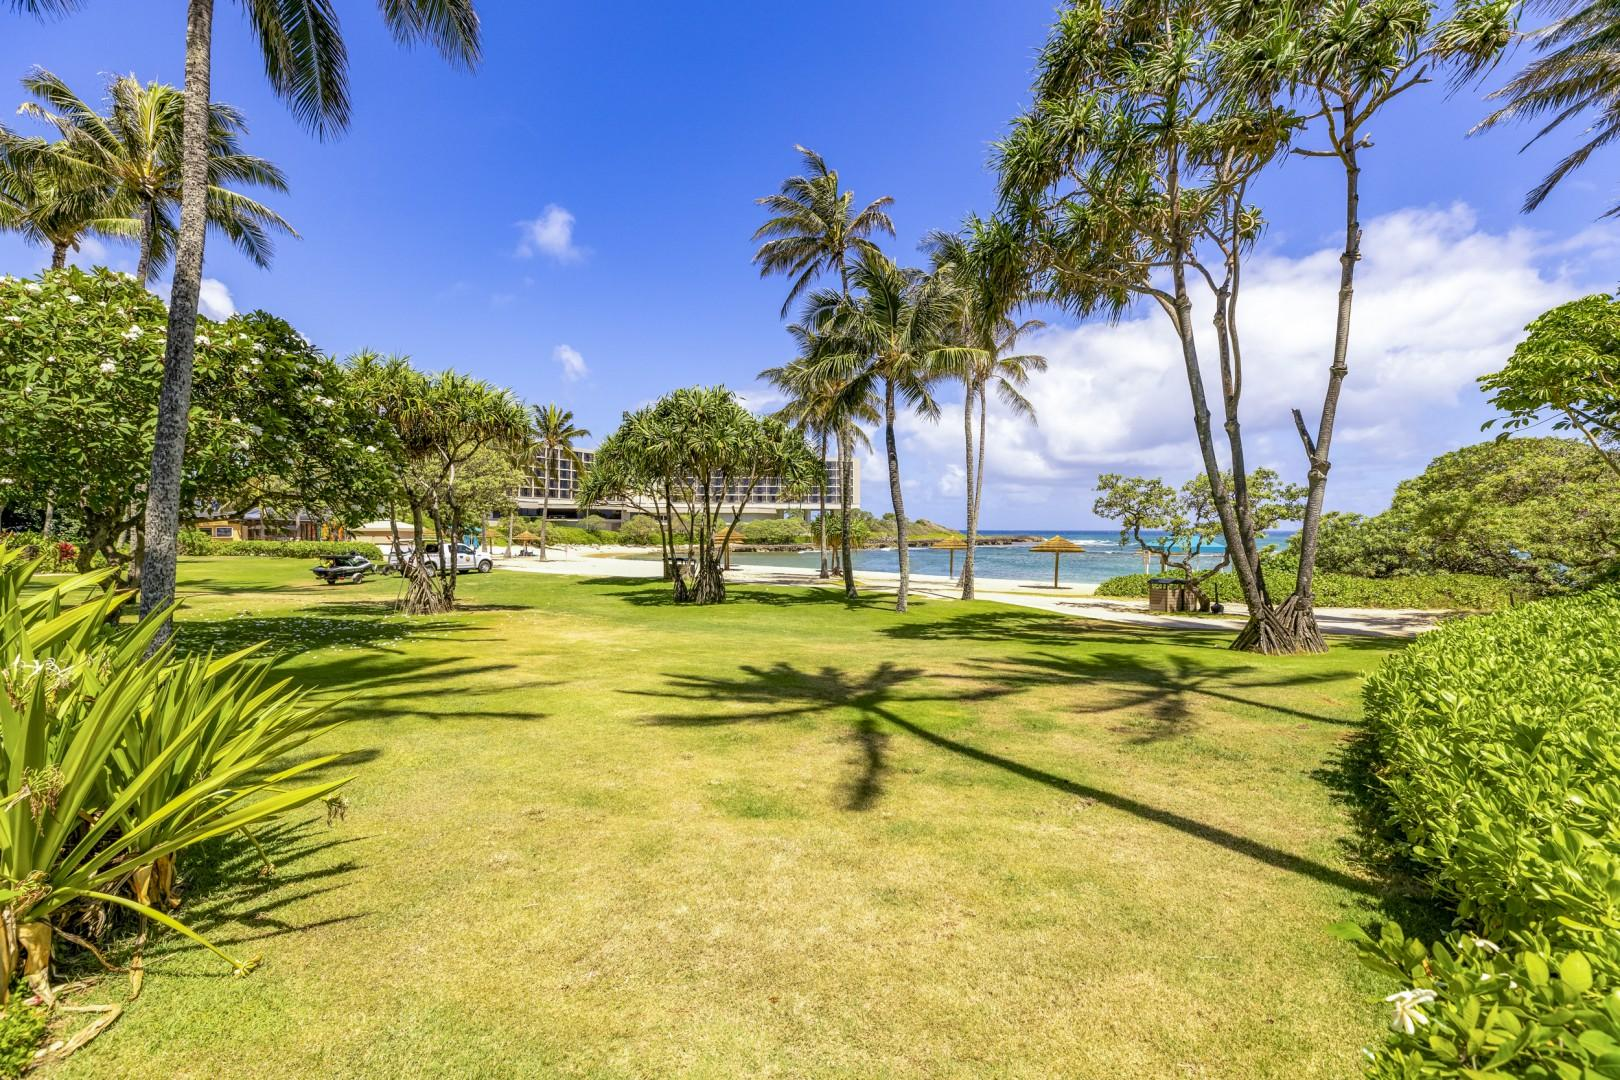 Villa grounds with close access to the beach lagoon in front.